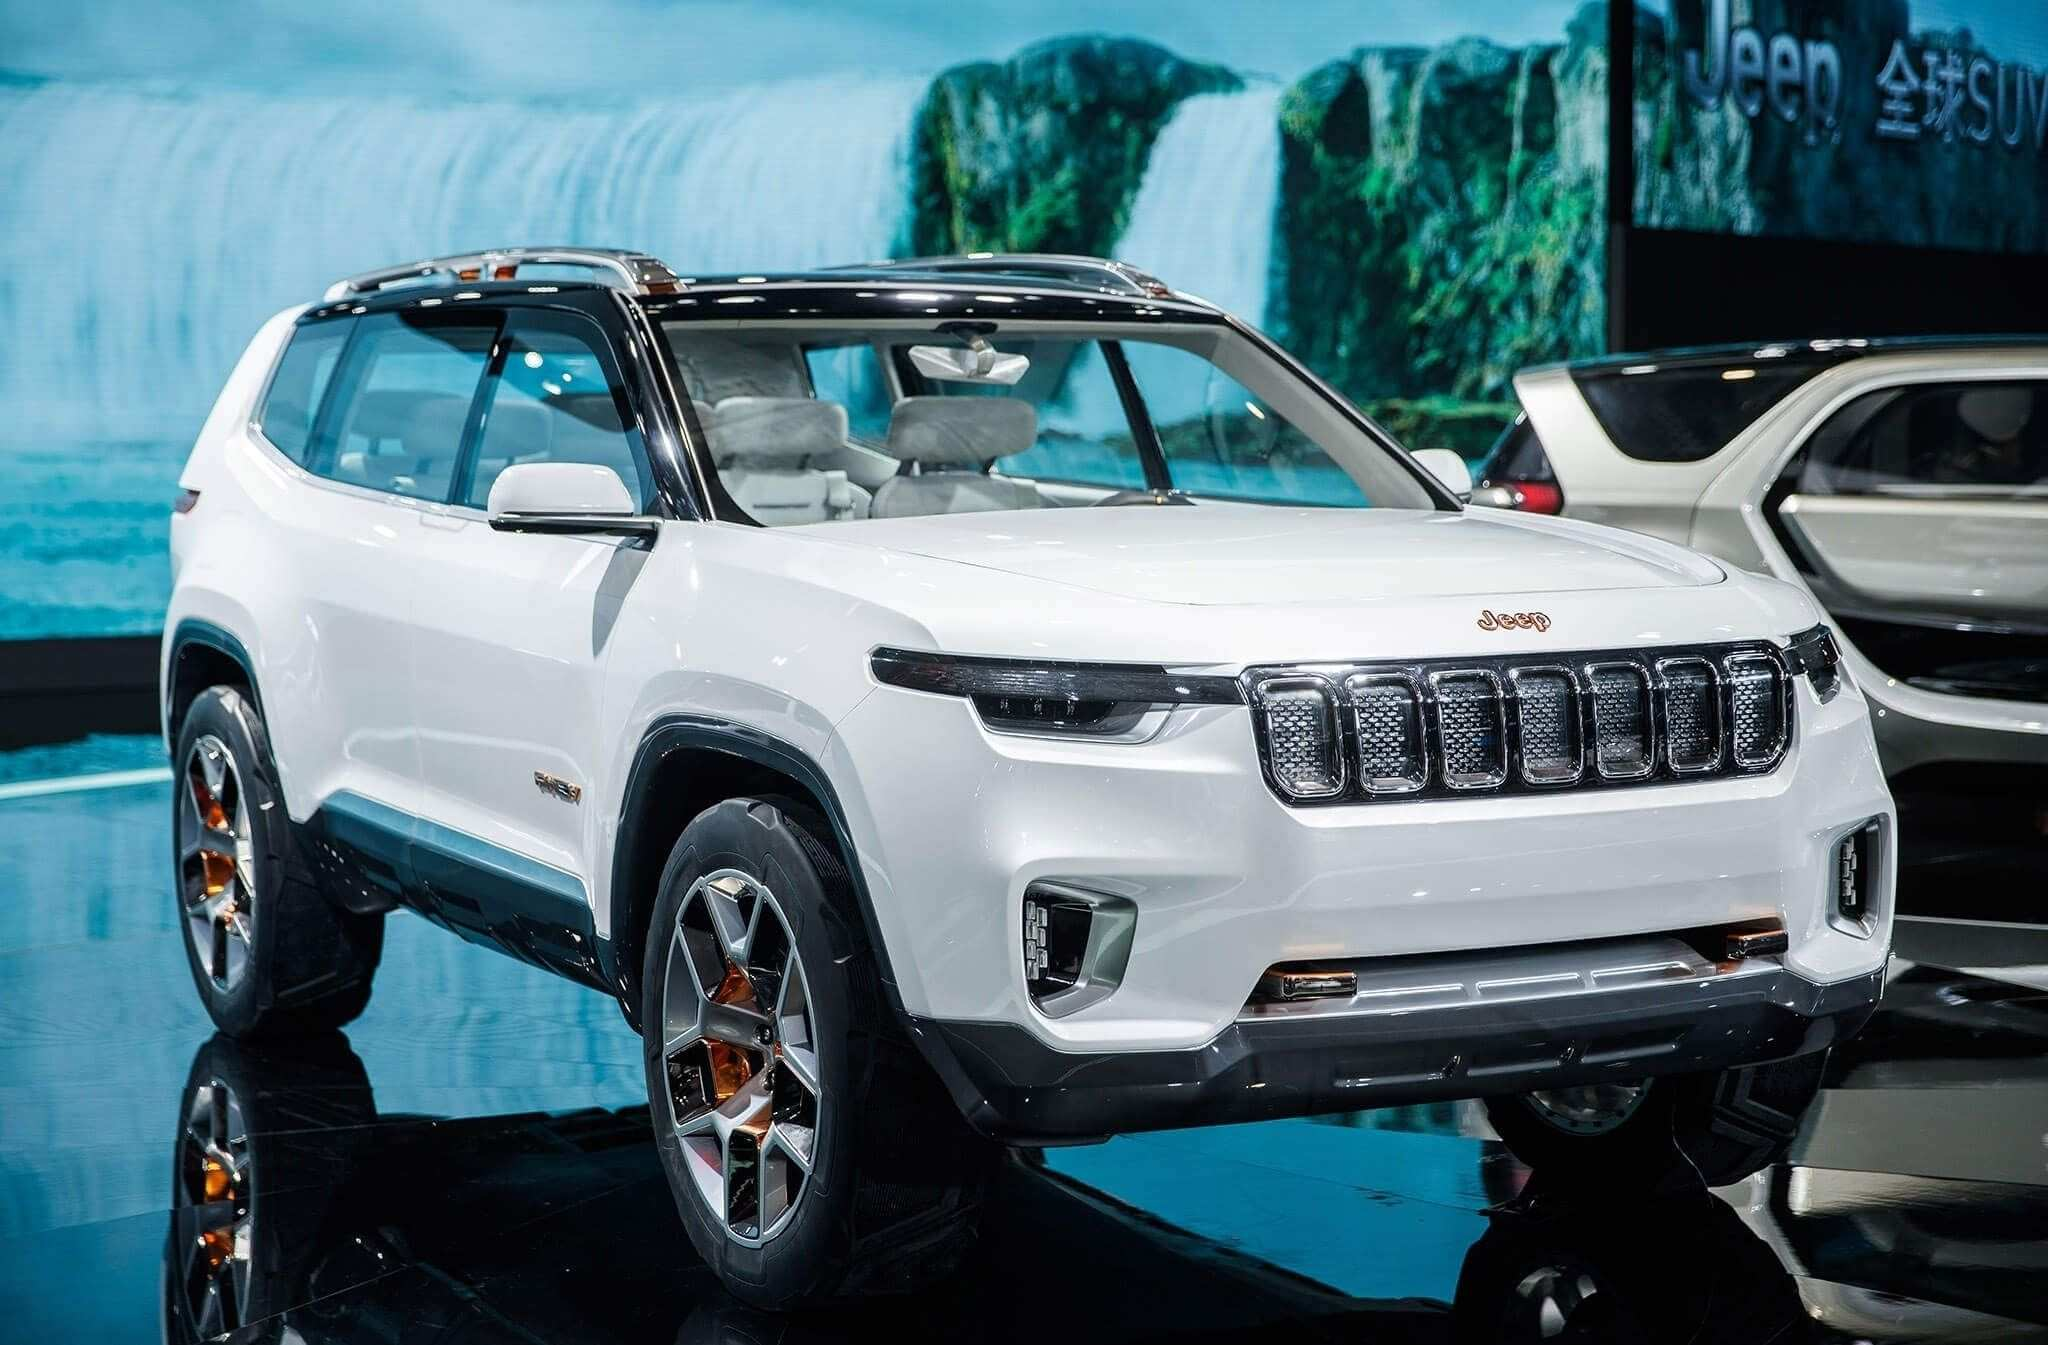 63 The 2020 Jeep Grand Cherokee Trackhawk Spy Shoot with 2020 Jeep Grand Cherokee Trackhawk